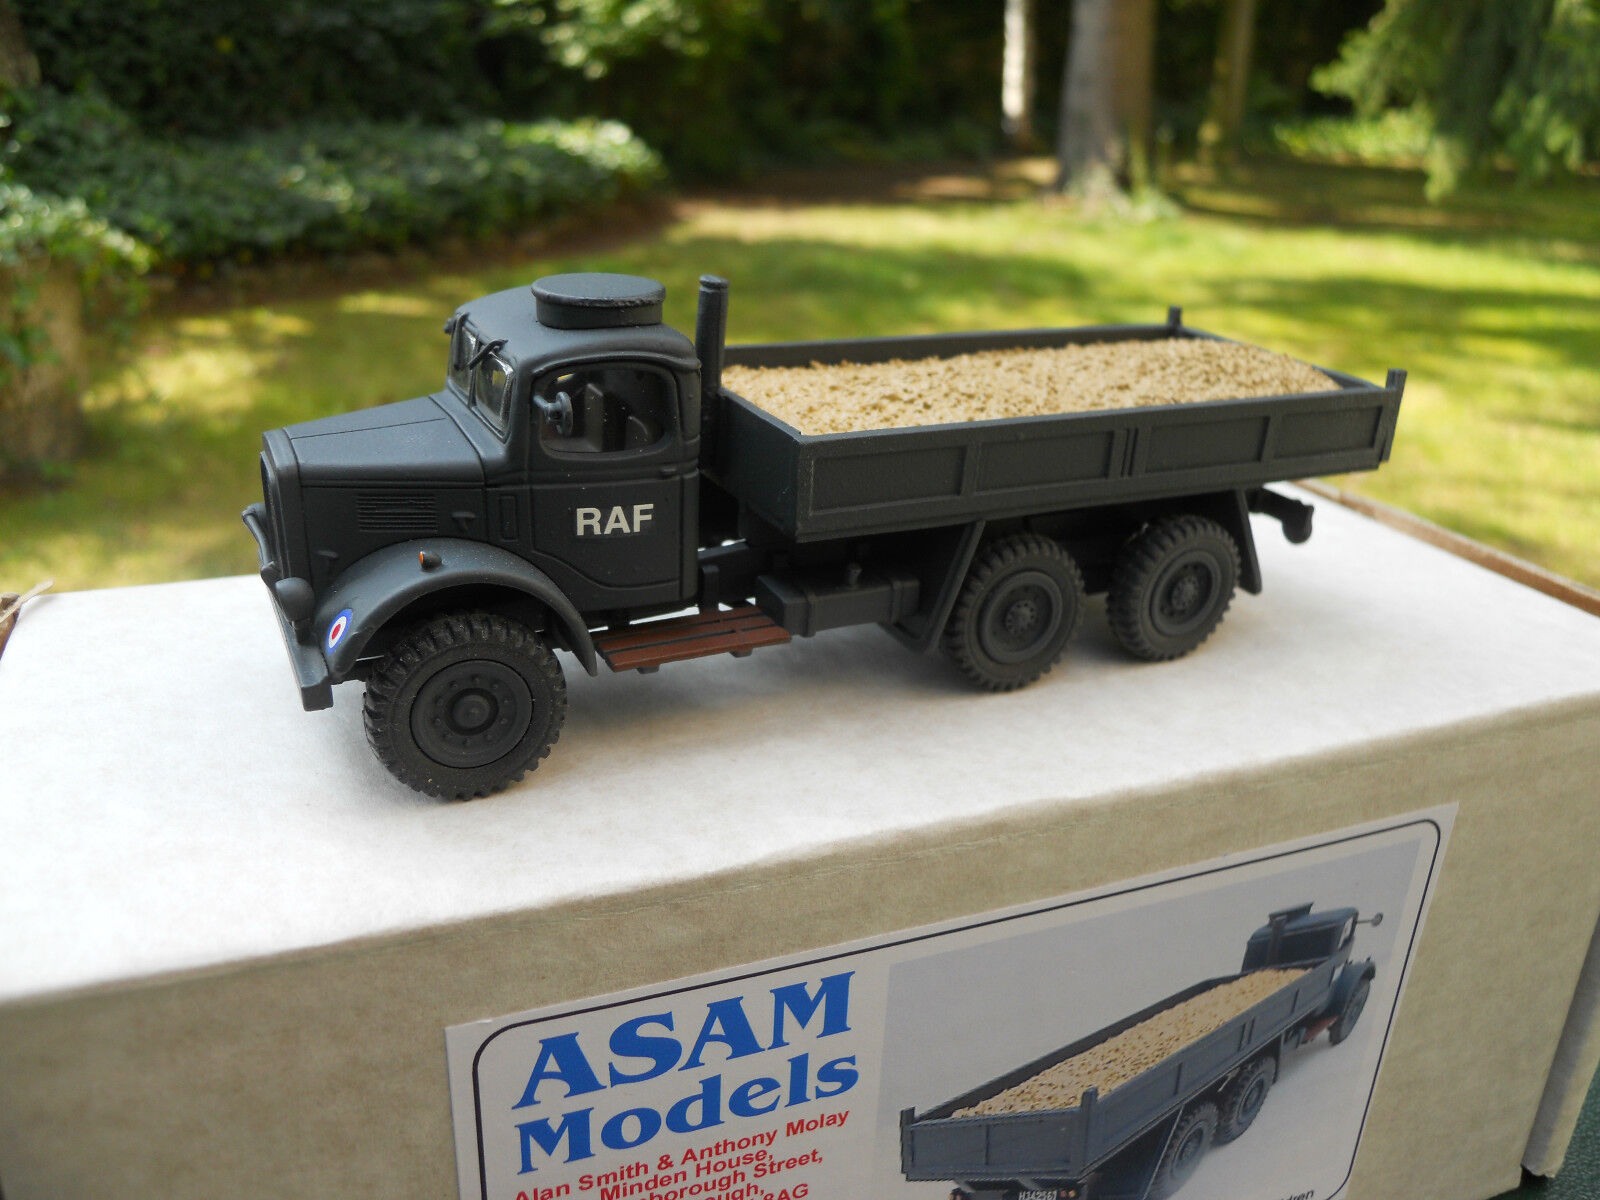 VEHICULE MILITAIRE ASAM MODELS REF HT 294 AUSTIN K6  TIPPER RAF  MINT IN BOX